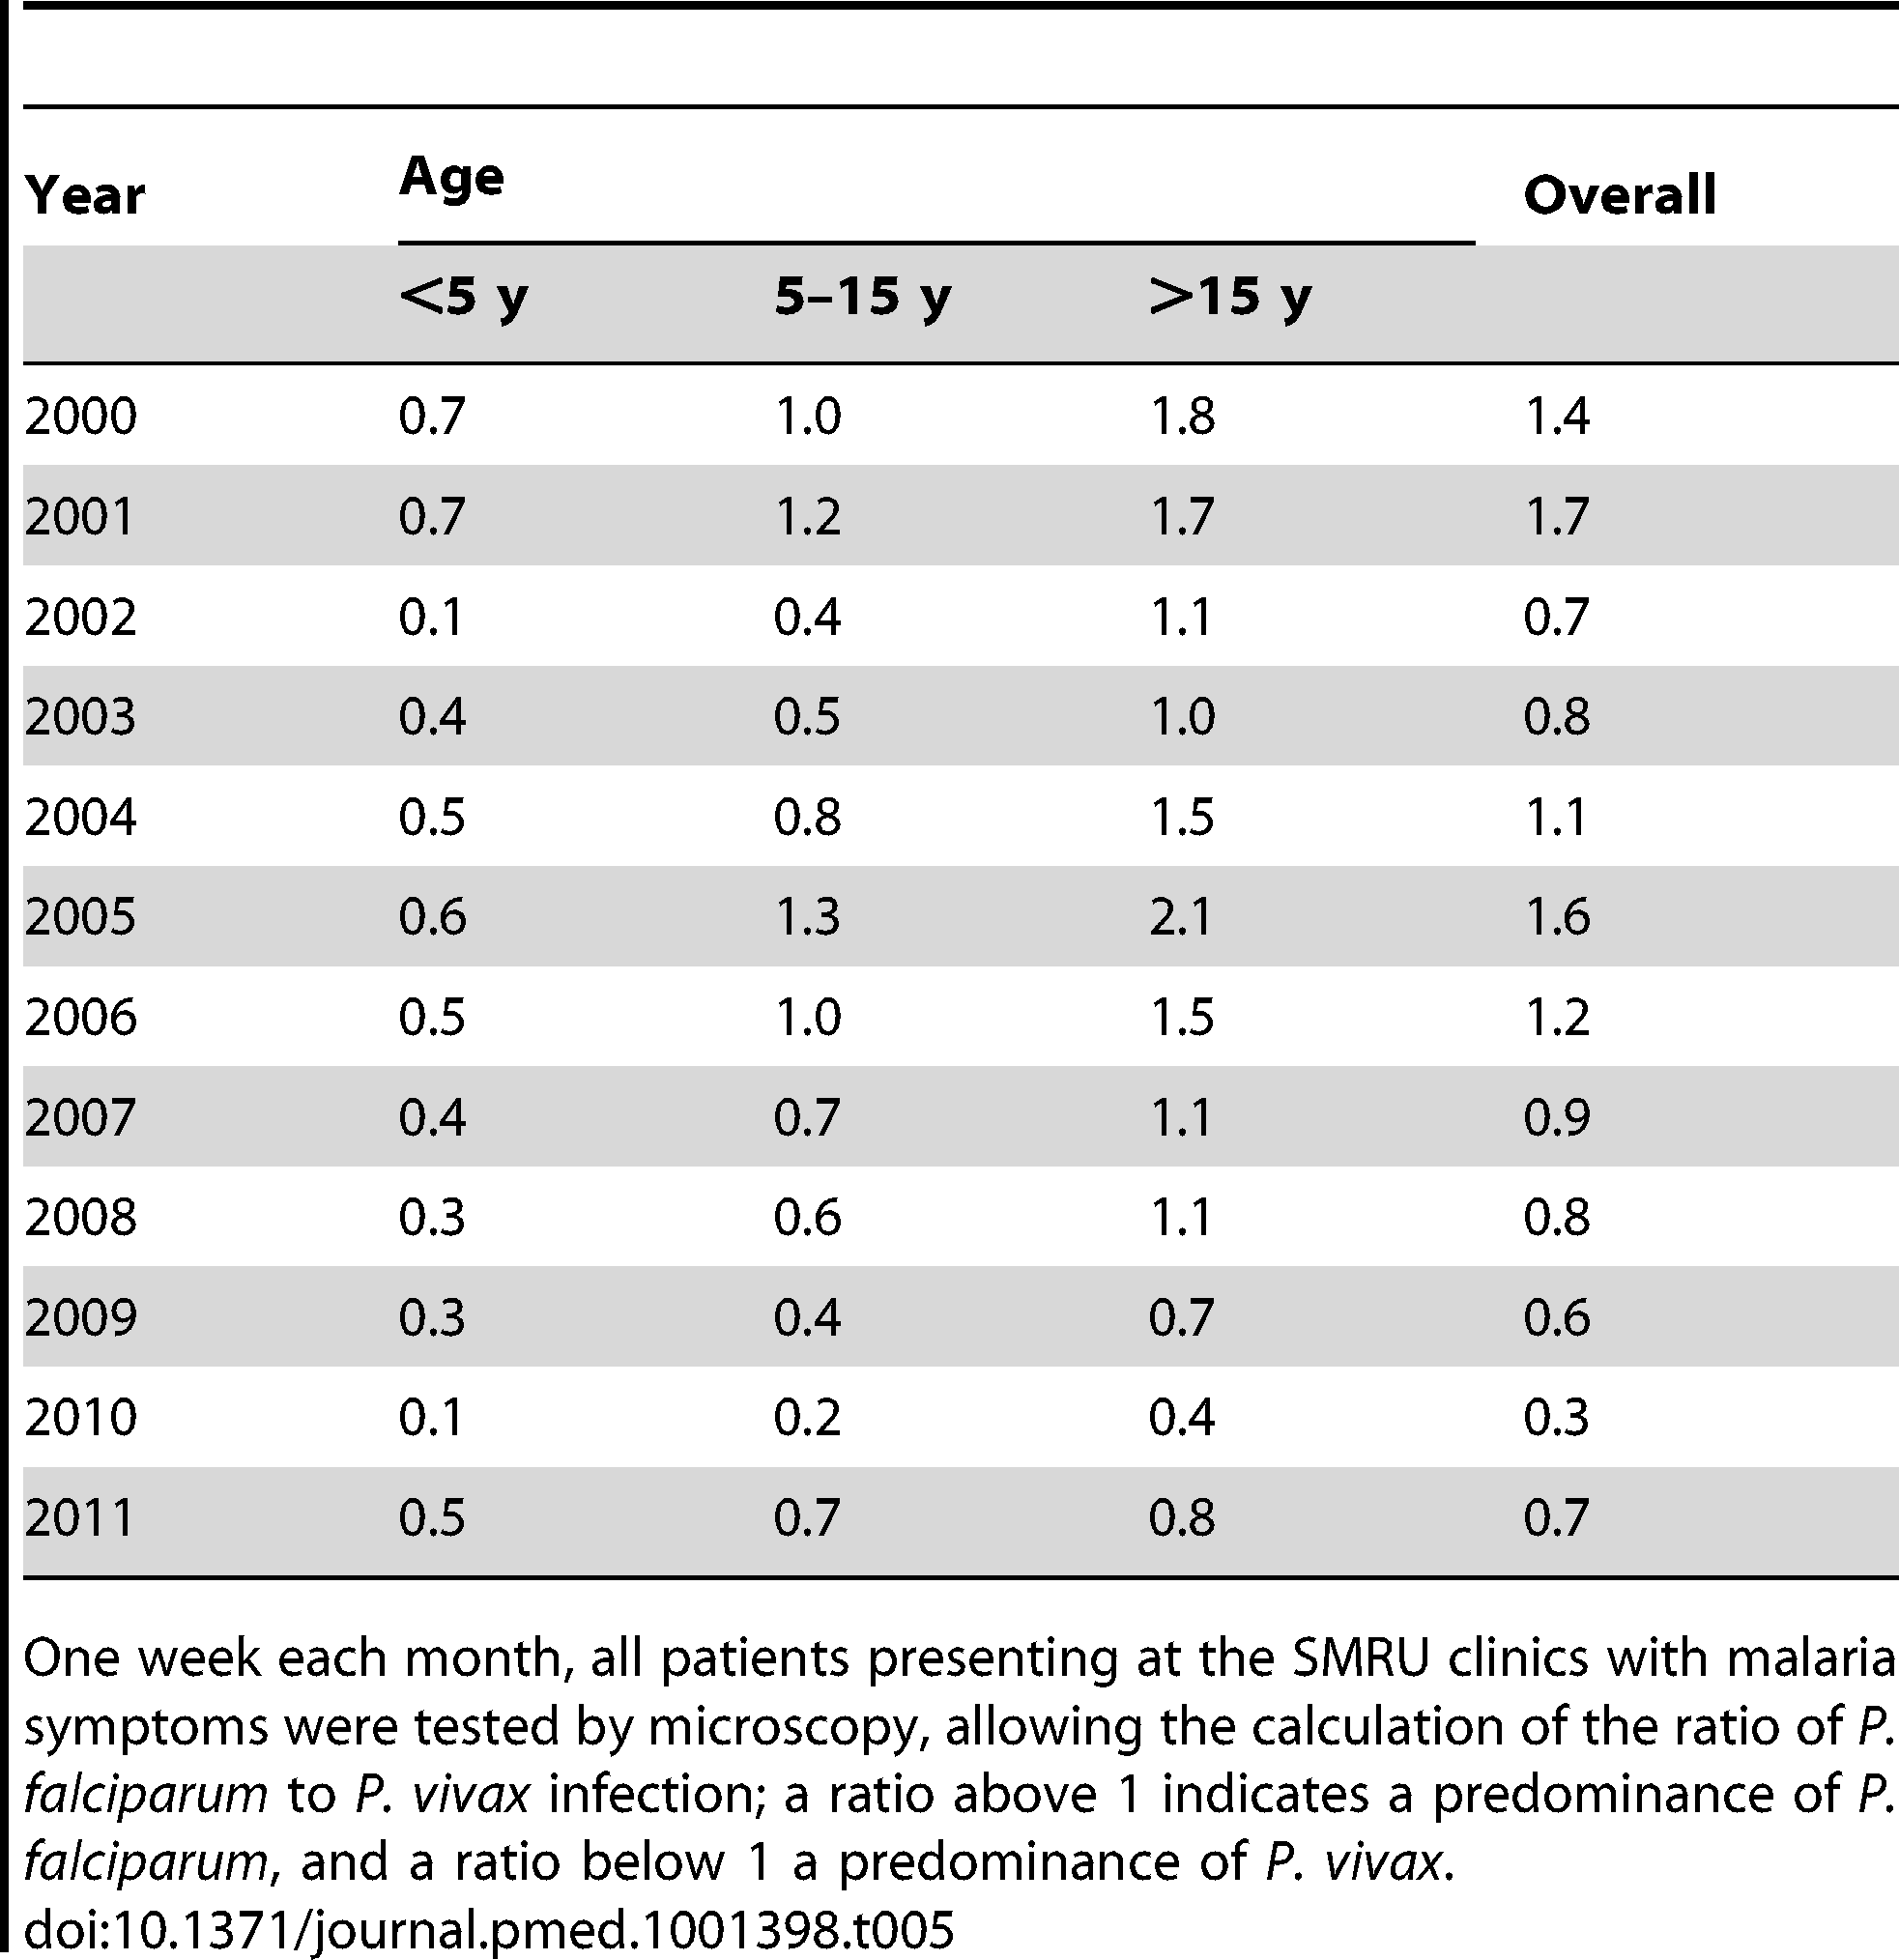 Ratio of <i>P. falciparum</i> to <i>P. vivax</i> malaria cases confirmed during weeks when all patients presenting to SMRU clinics with malaria symptoms had a malaria smear, by age group.